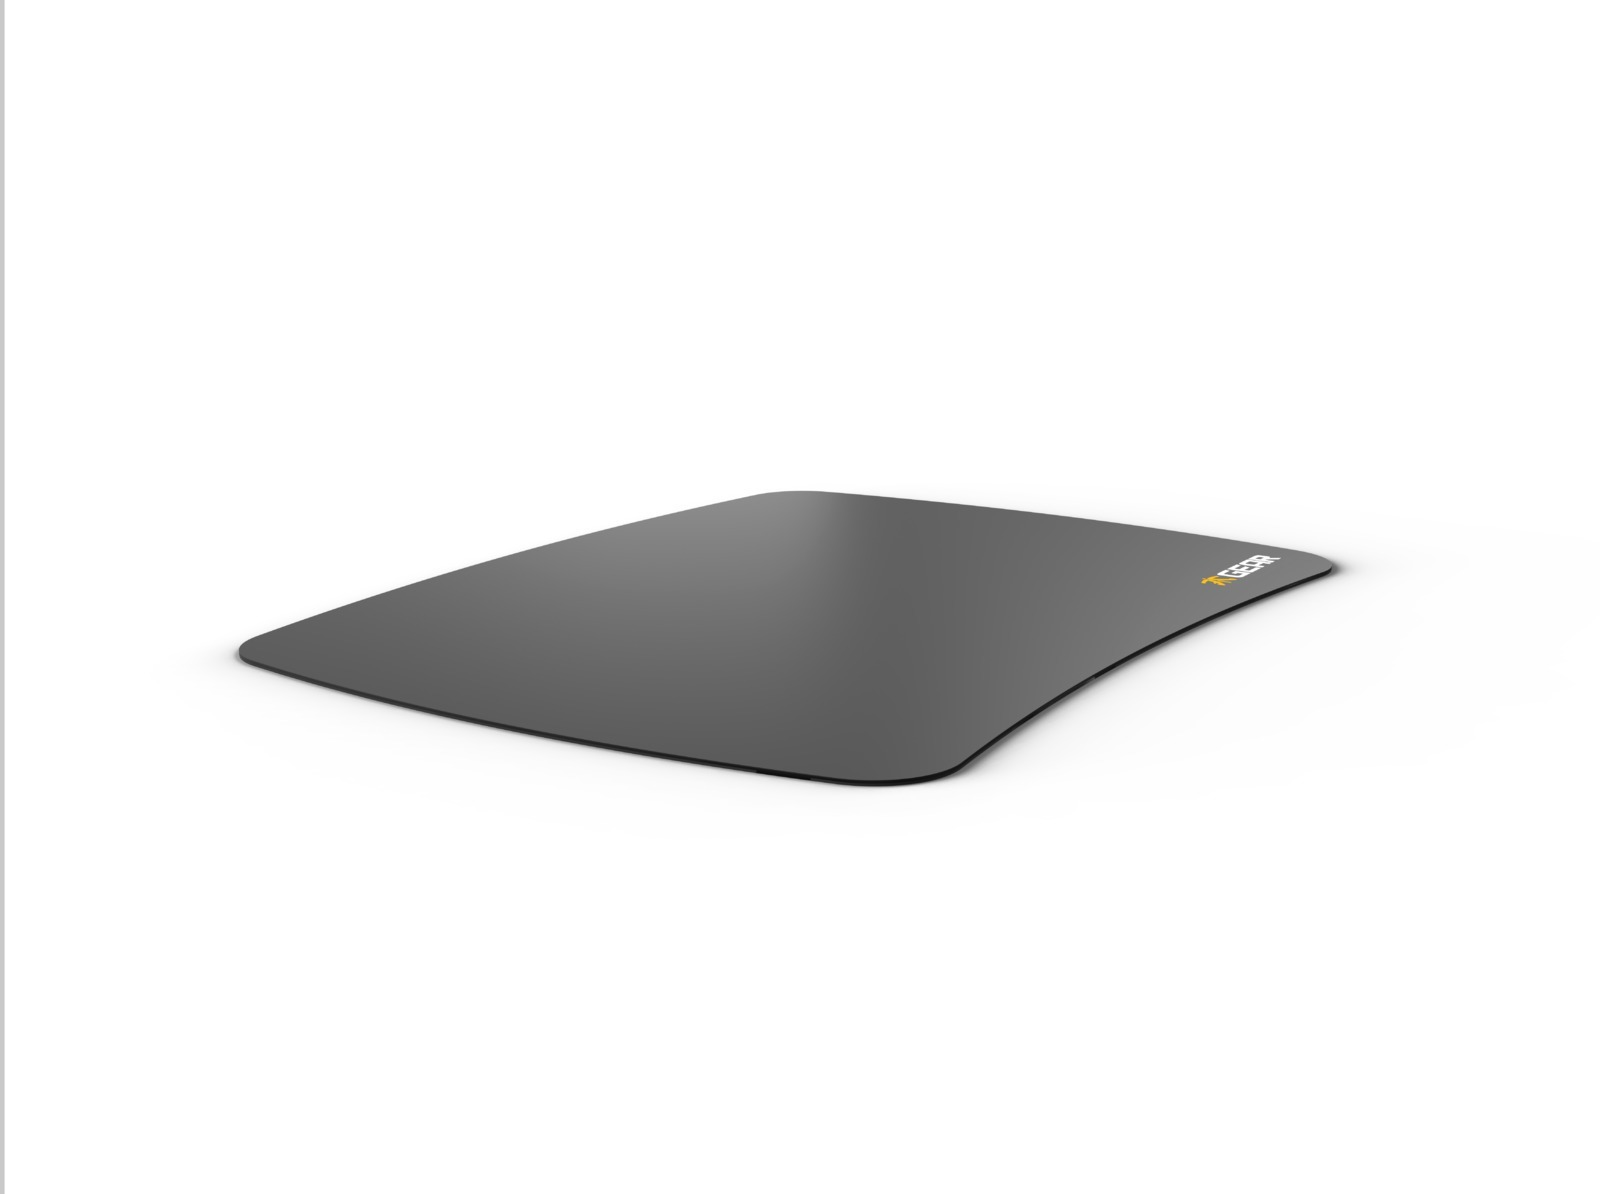 Fnatic Boost Pro Gaming Mousepad - Speed L for PC Games image